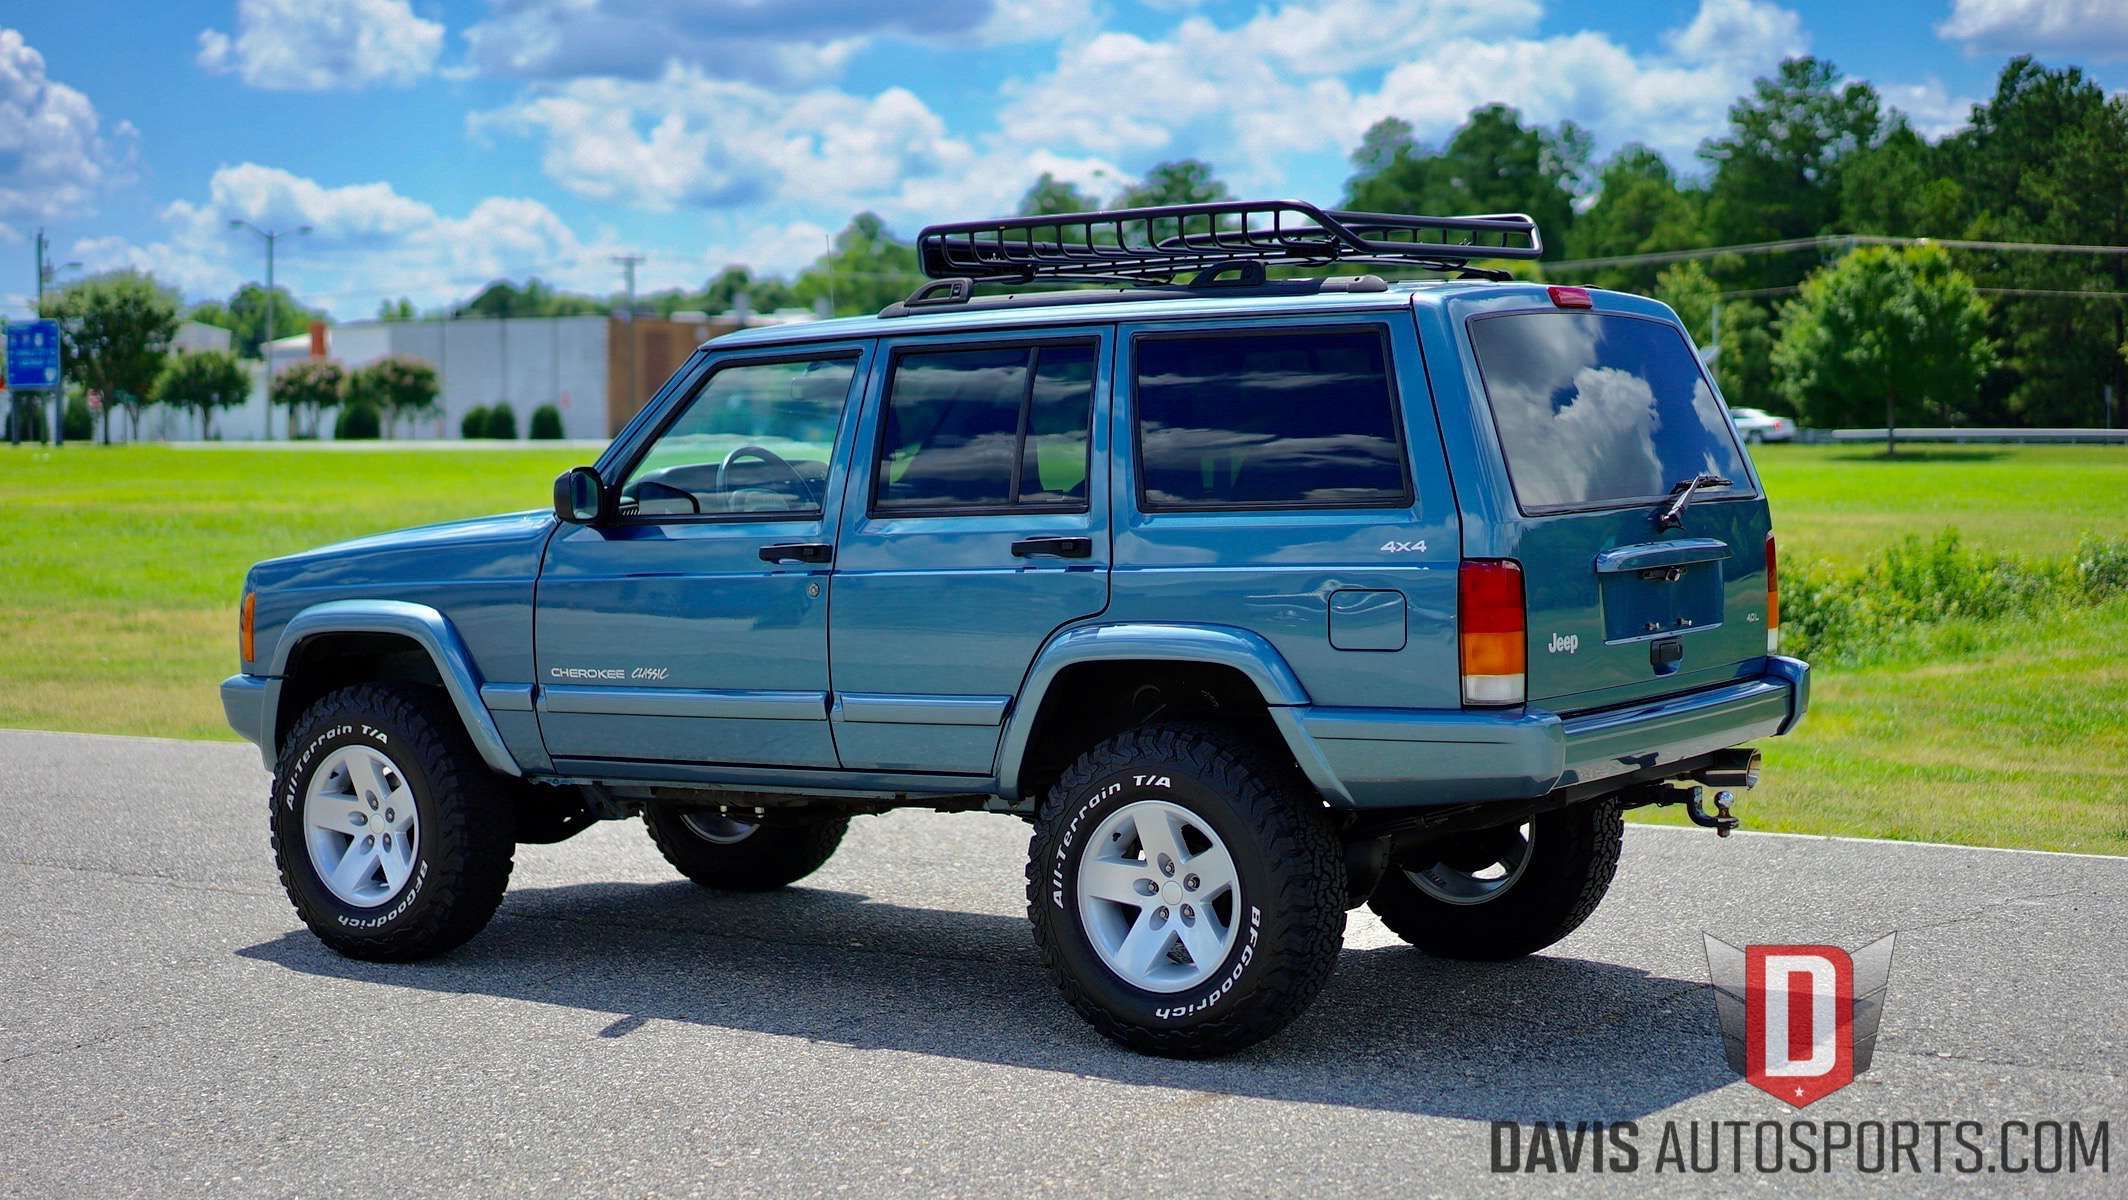 Lifted Jeep Cherokee For Sale 7 24 17 Davis Autosports Lifted